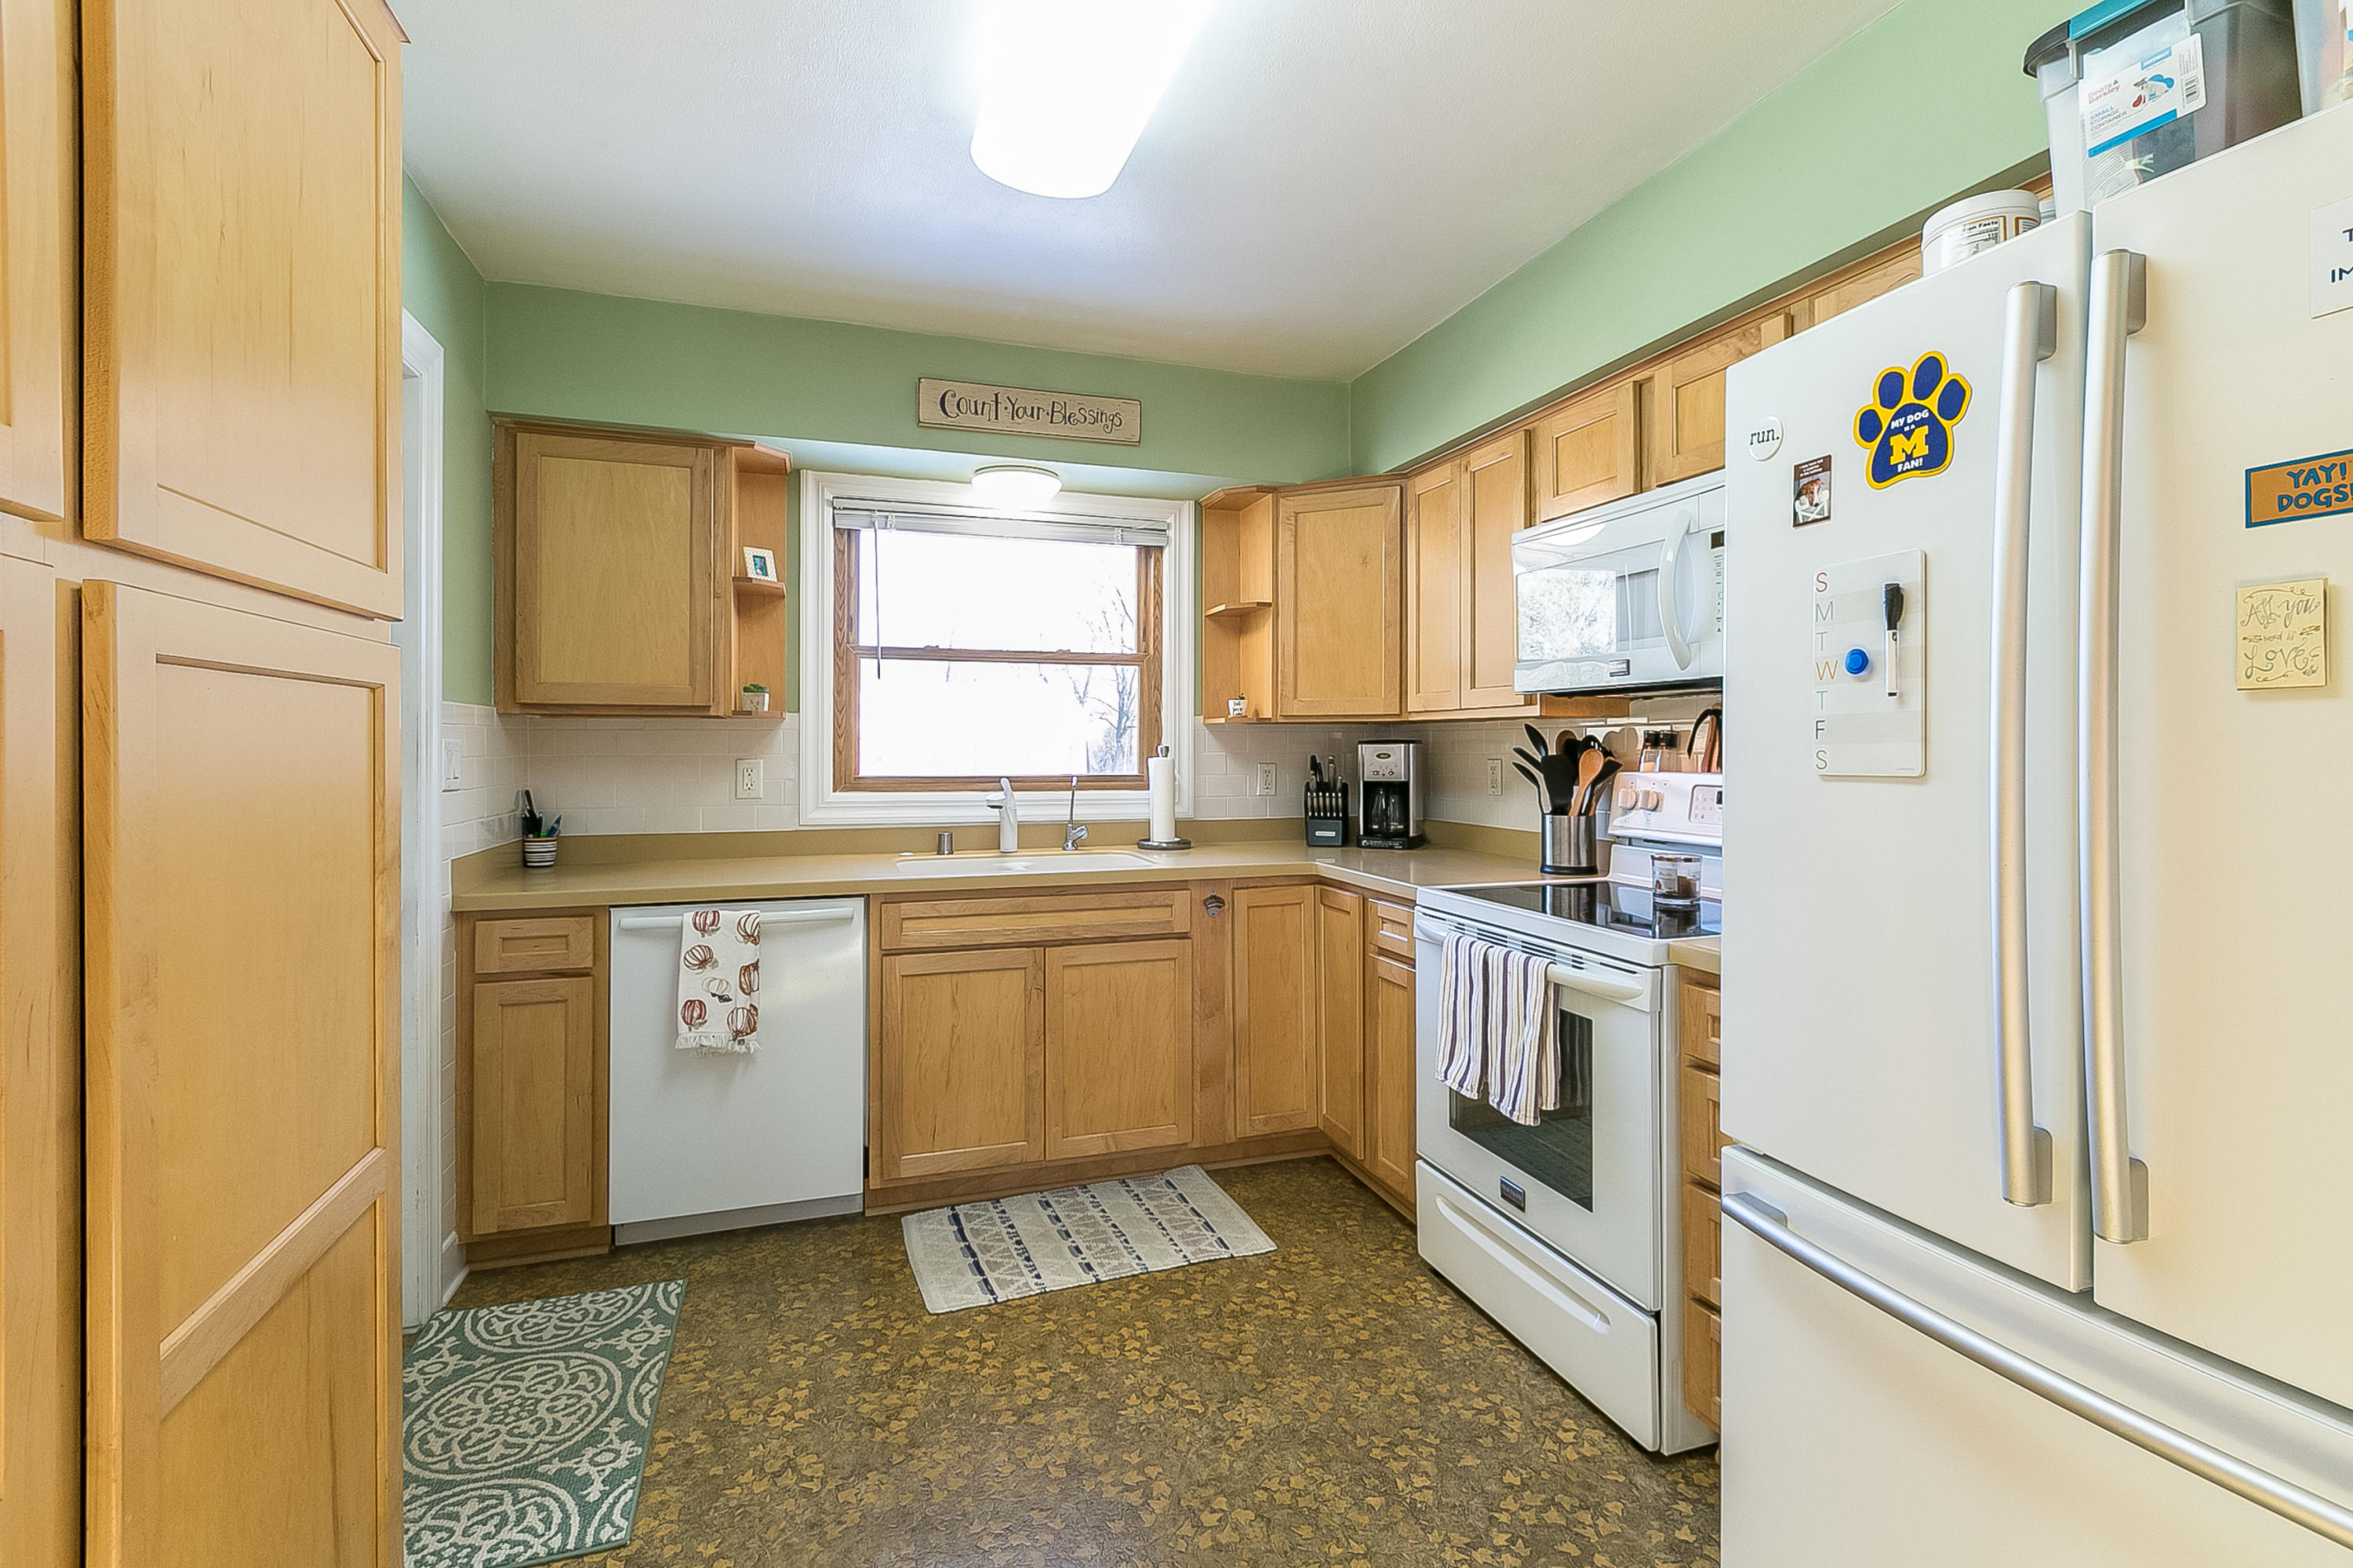 18230 Midland Pl, Brookfield, Wisconsin 53045, 3 Bedrooms Bedrooms, ,1 BathroomBathrooms,Single-Family,For Sale,Midland Pl,1667688